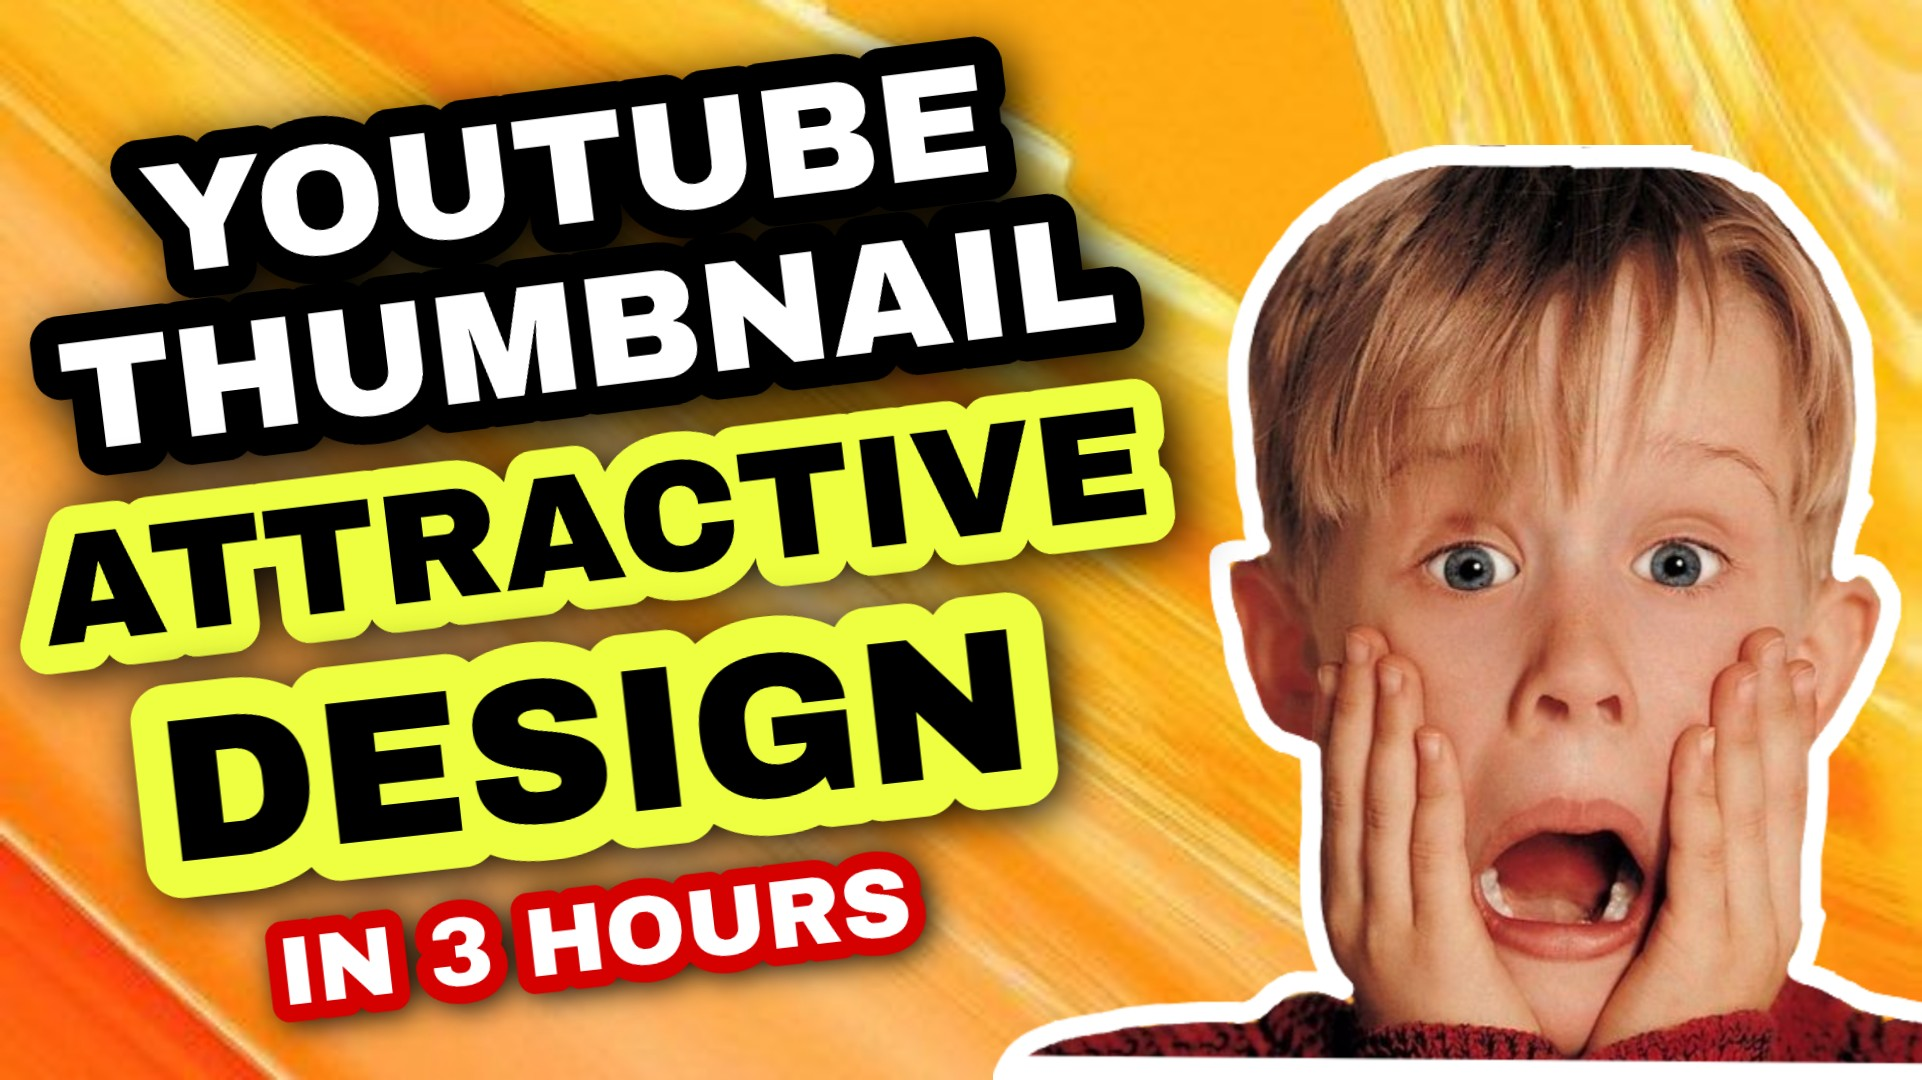 I Will design amazing youtube thumbnail in 3 hours